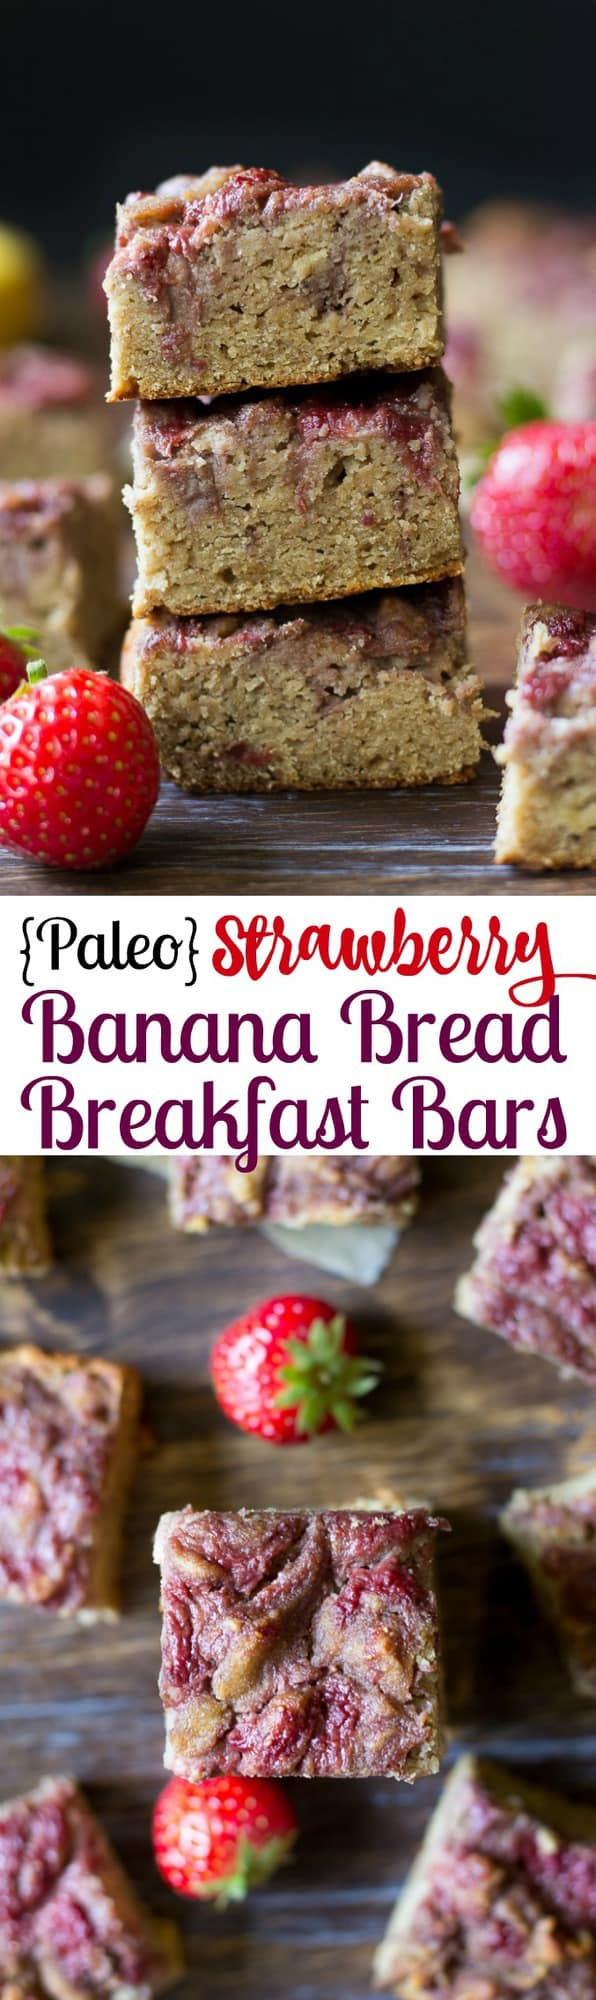 Paleo Strawberry Banana Bread Breakfast Bars that are grain free, Paleo, seriously delicious and very kid friendly! #Stopandshop #betterforyou #ad